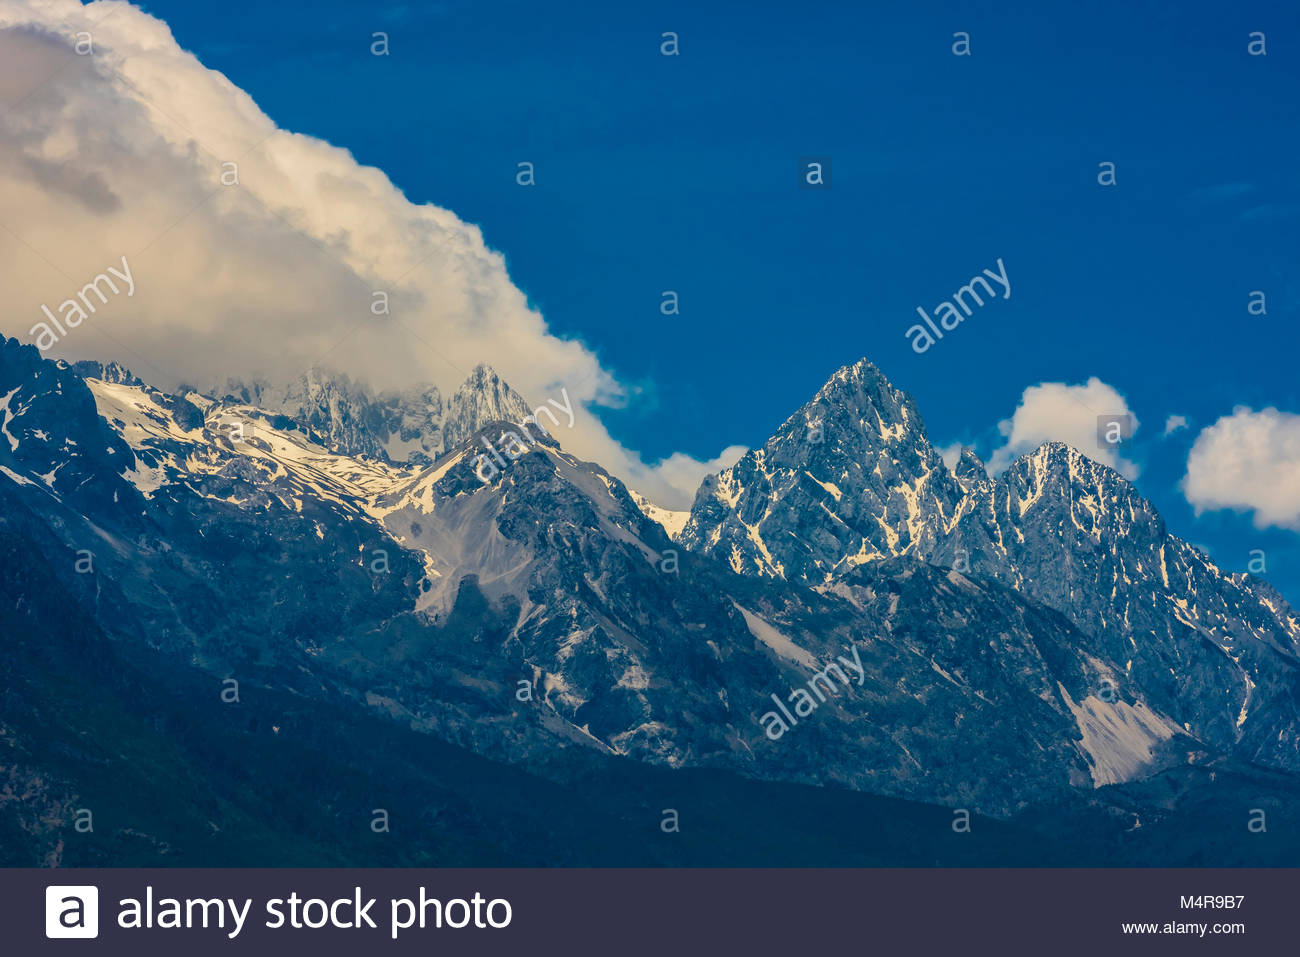 18,360 foot Jade Dragon Snow Mountain, Lijiang, Yunnan Province, China. - Stock Image